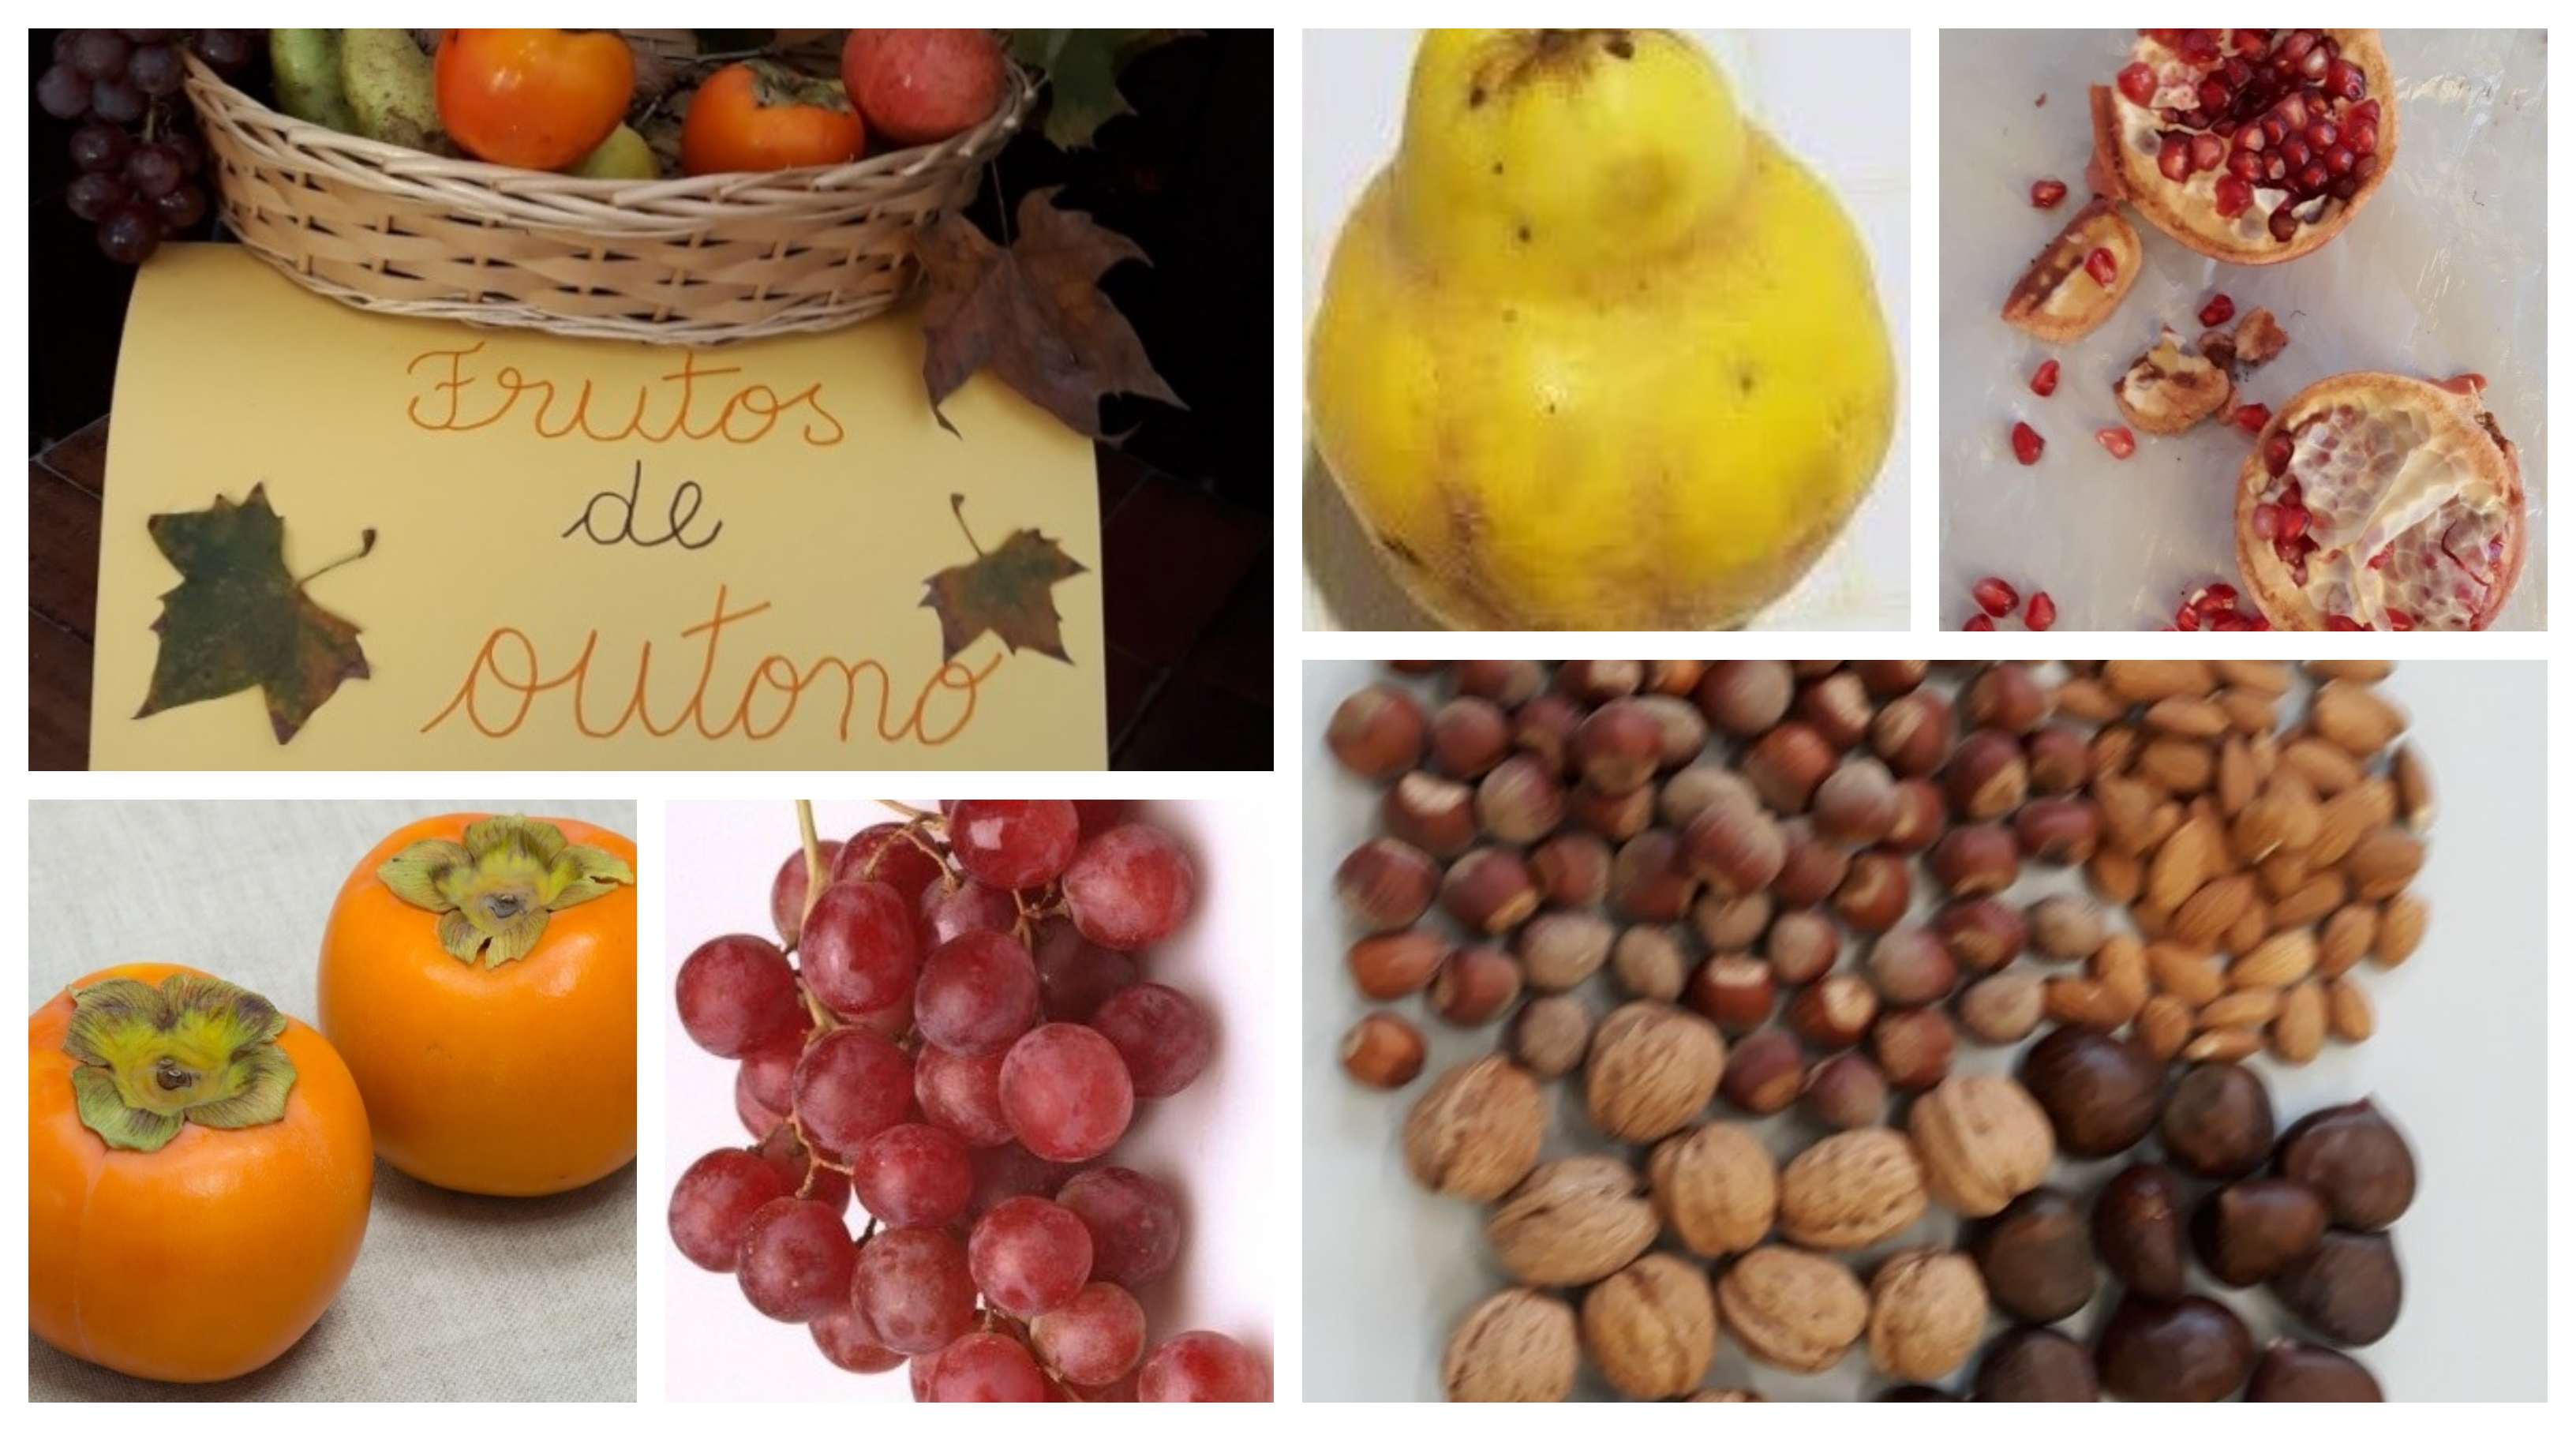 frutosdeoutono collage